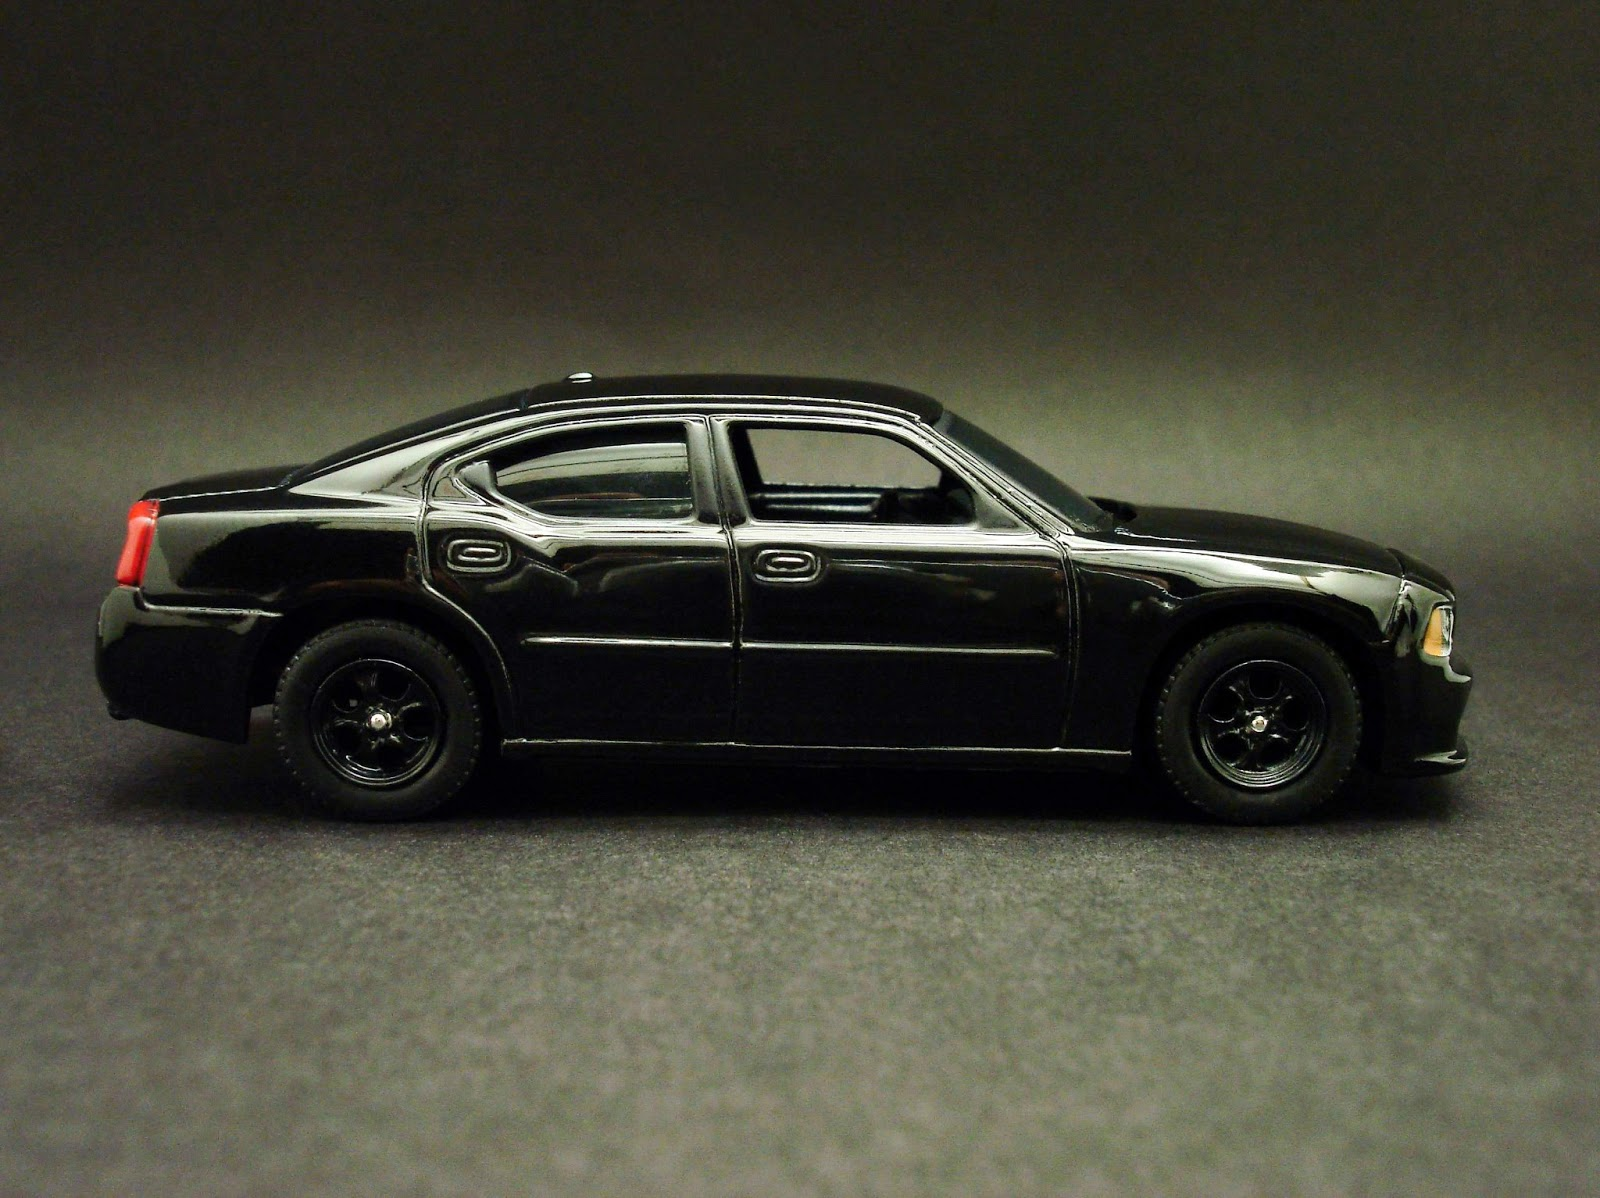 Diecast hobbist 2008 dodge charger black unmarked police car for 2008 dodge charger motor